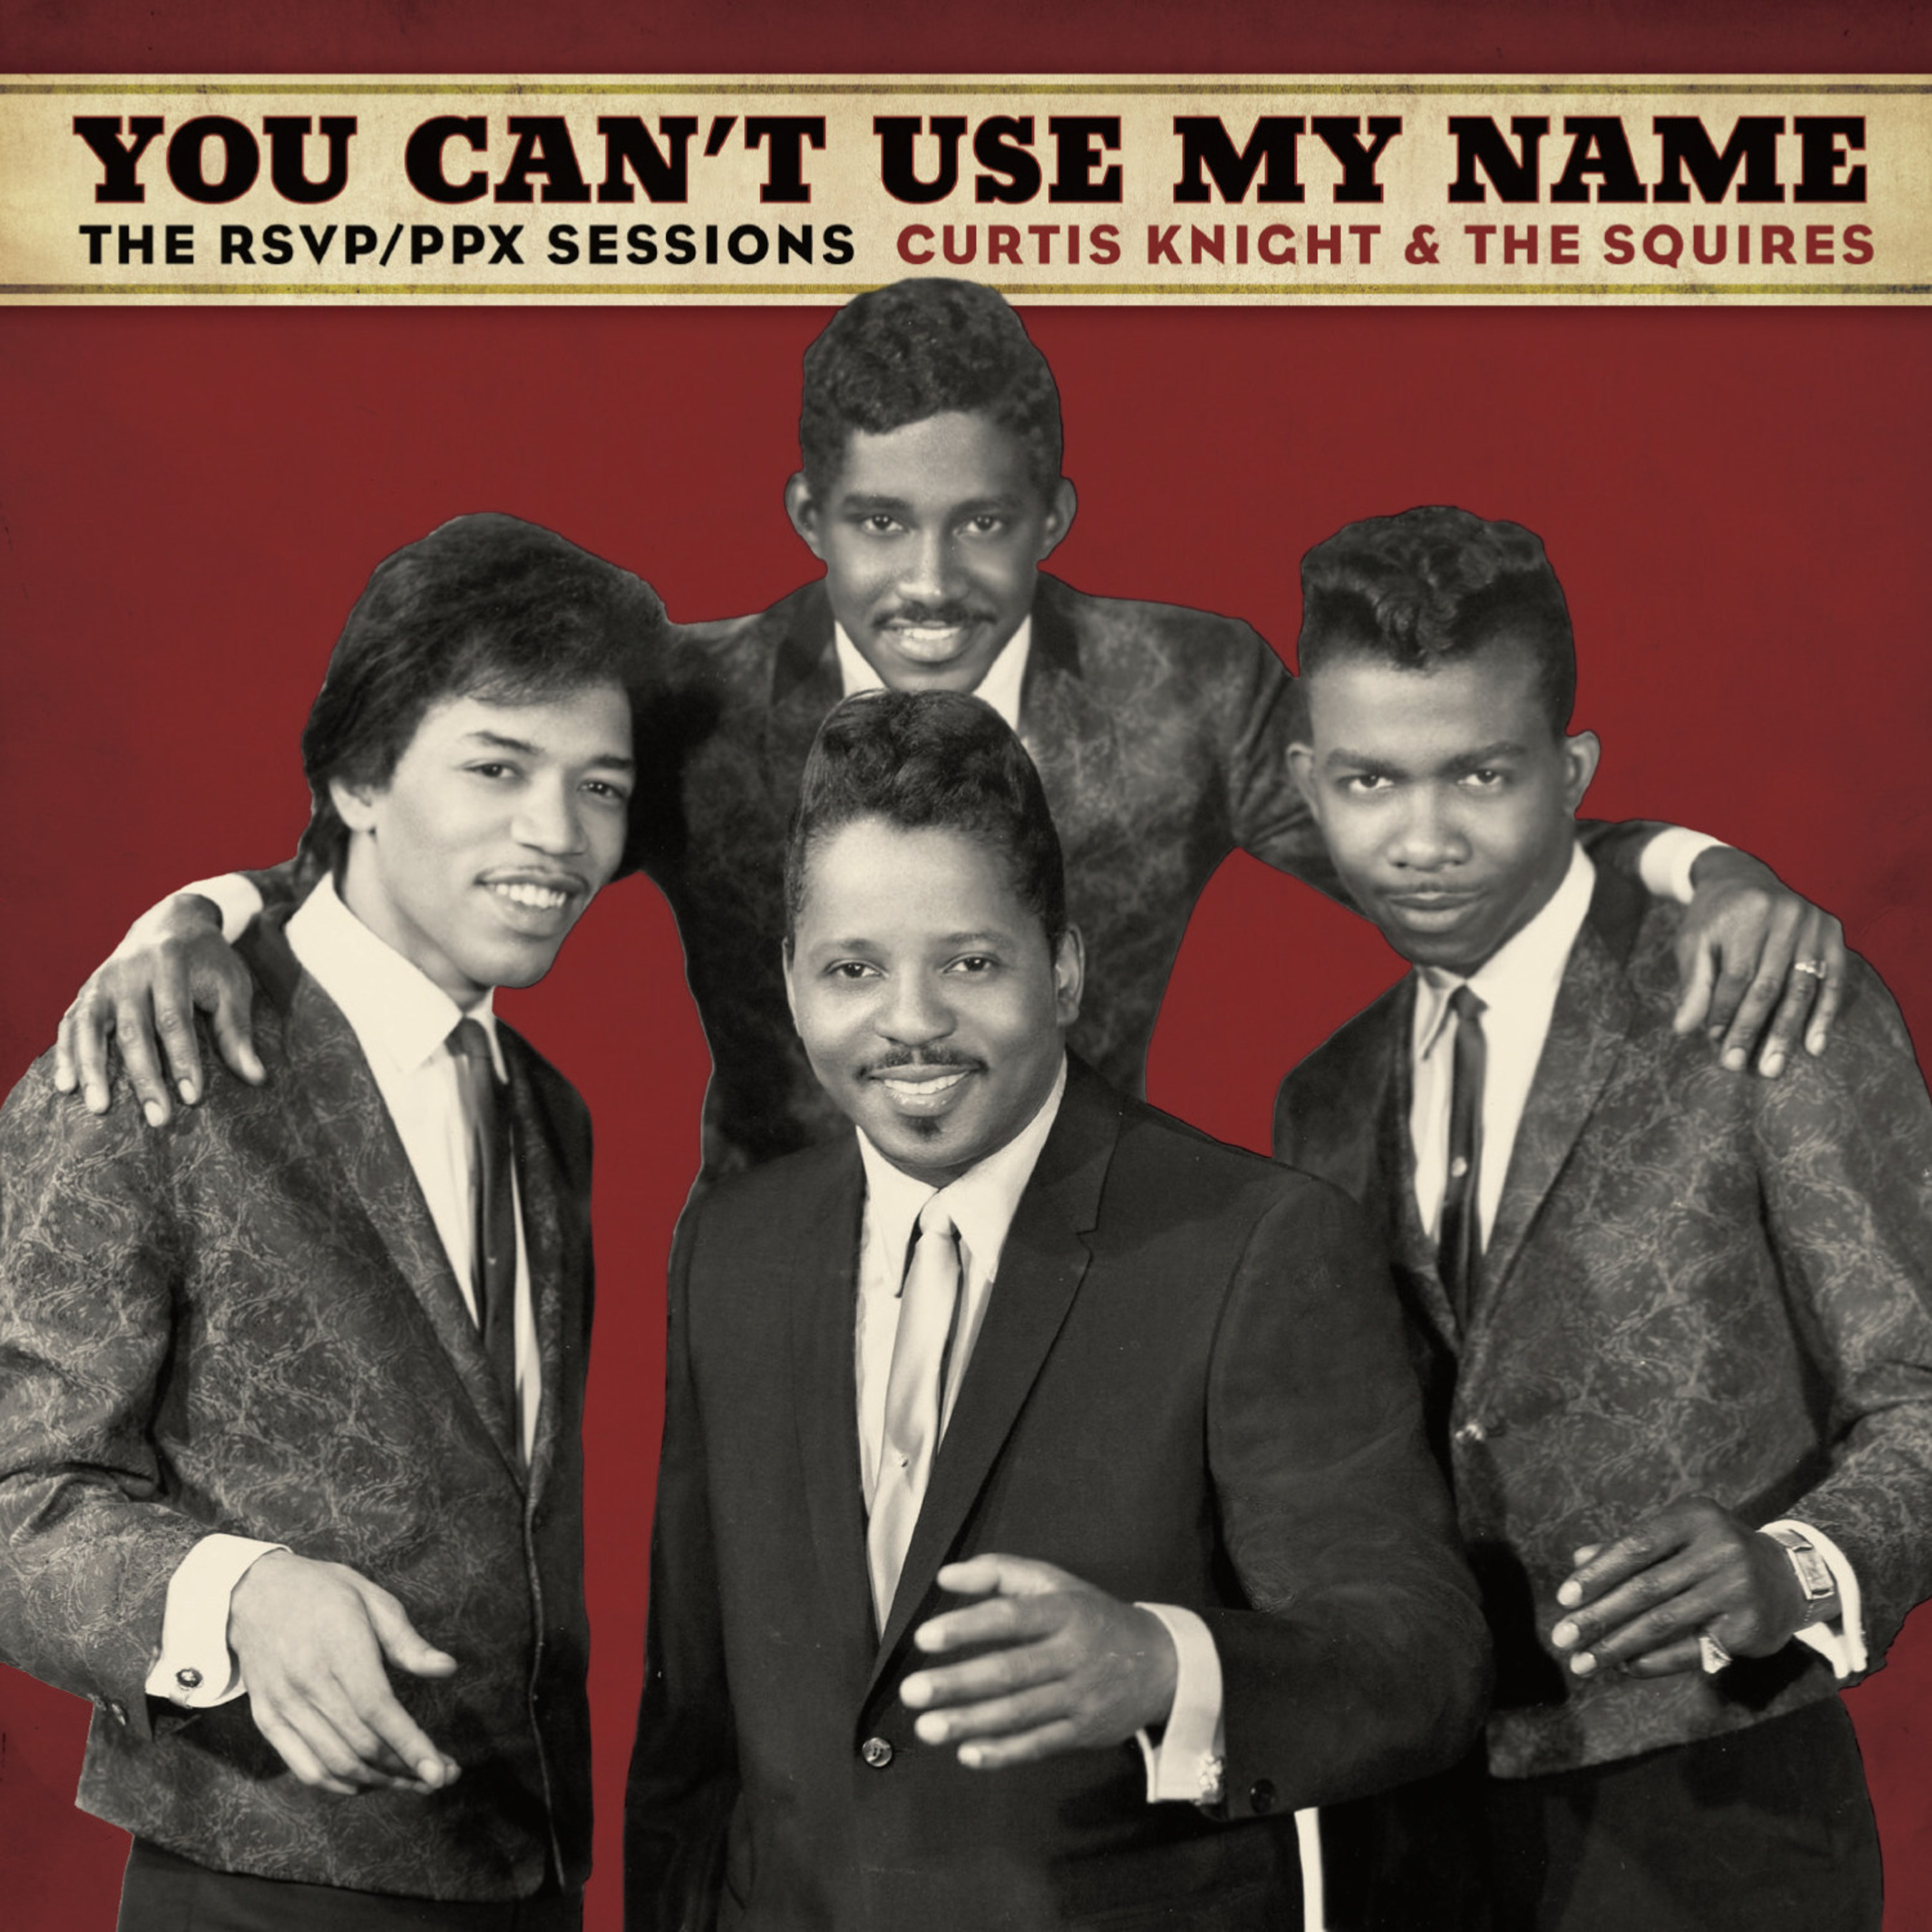 Experience Hendrix L.L.C. And Legacy Recordings To Release You Can't Use My Name: Curtis Knight & The Squires (Featuring Jimi Hendrix) The RSVP/PPX Sessions On March 24